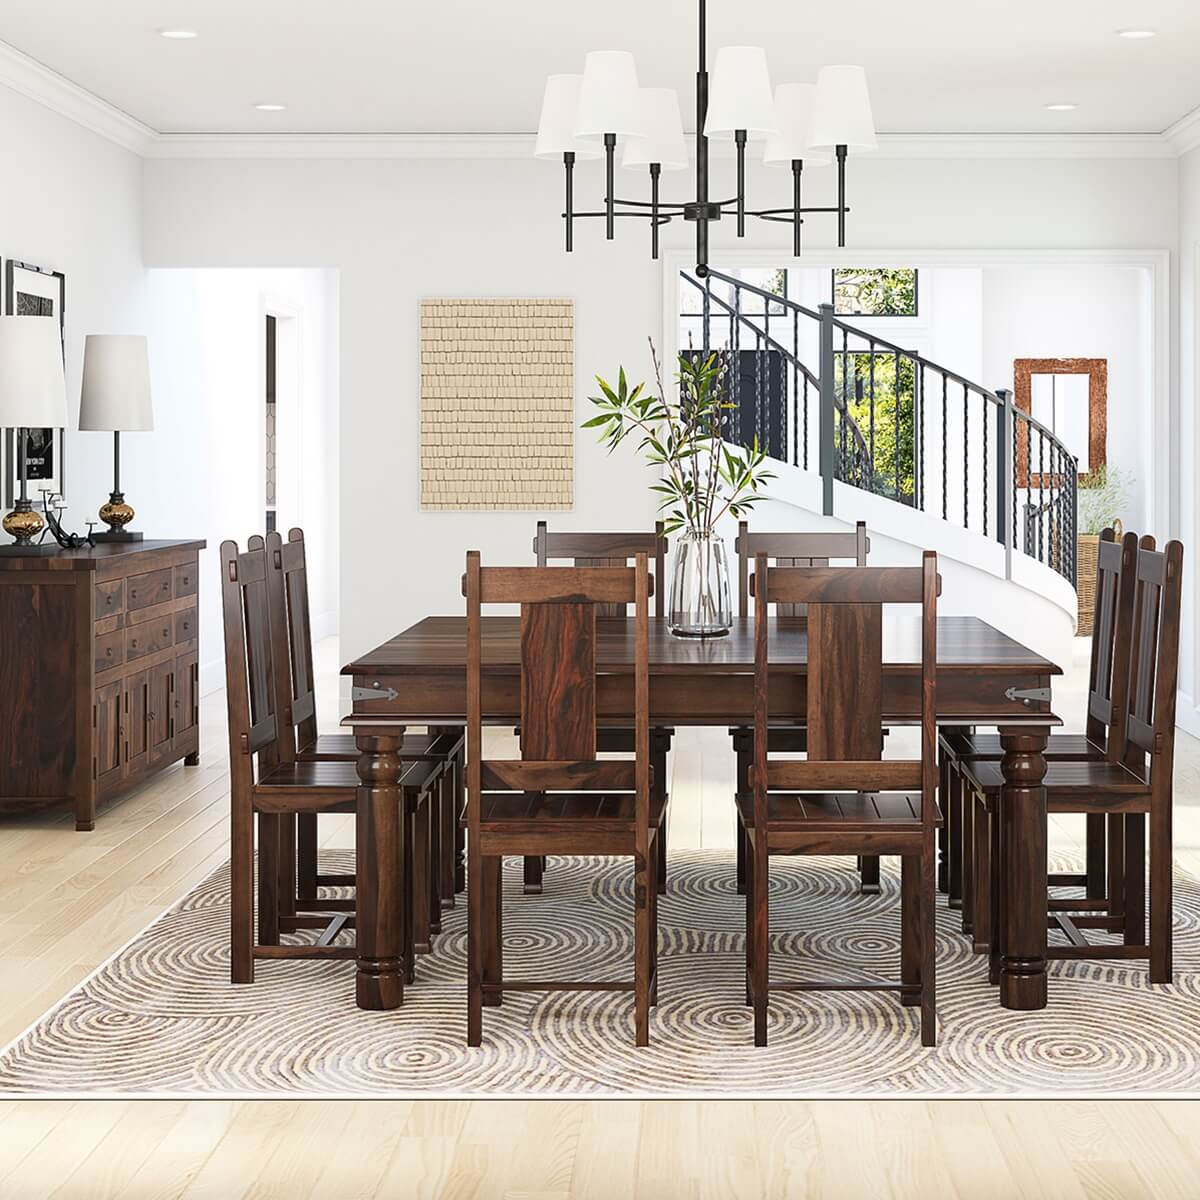 Richmond handcrafted rustic solid wood 10 piece dining room set hover to zoom